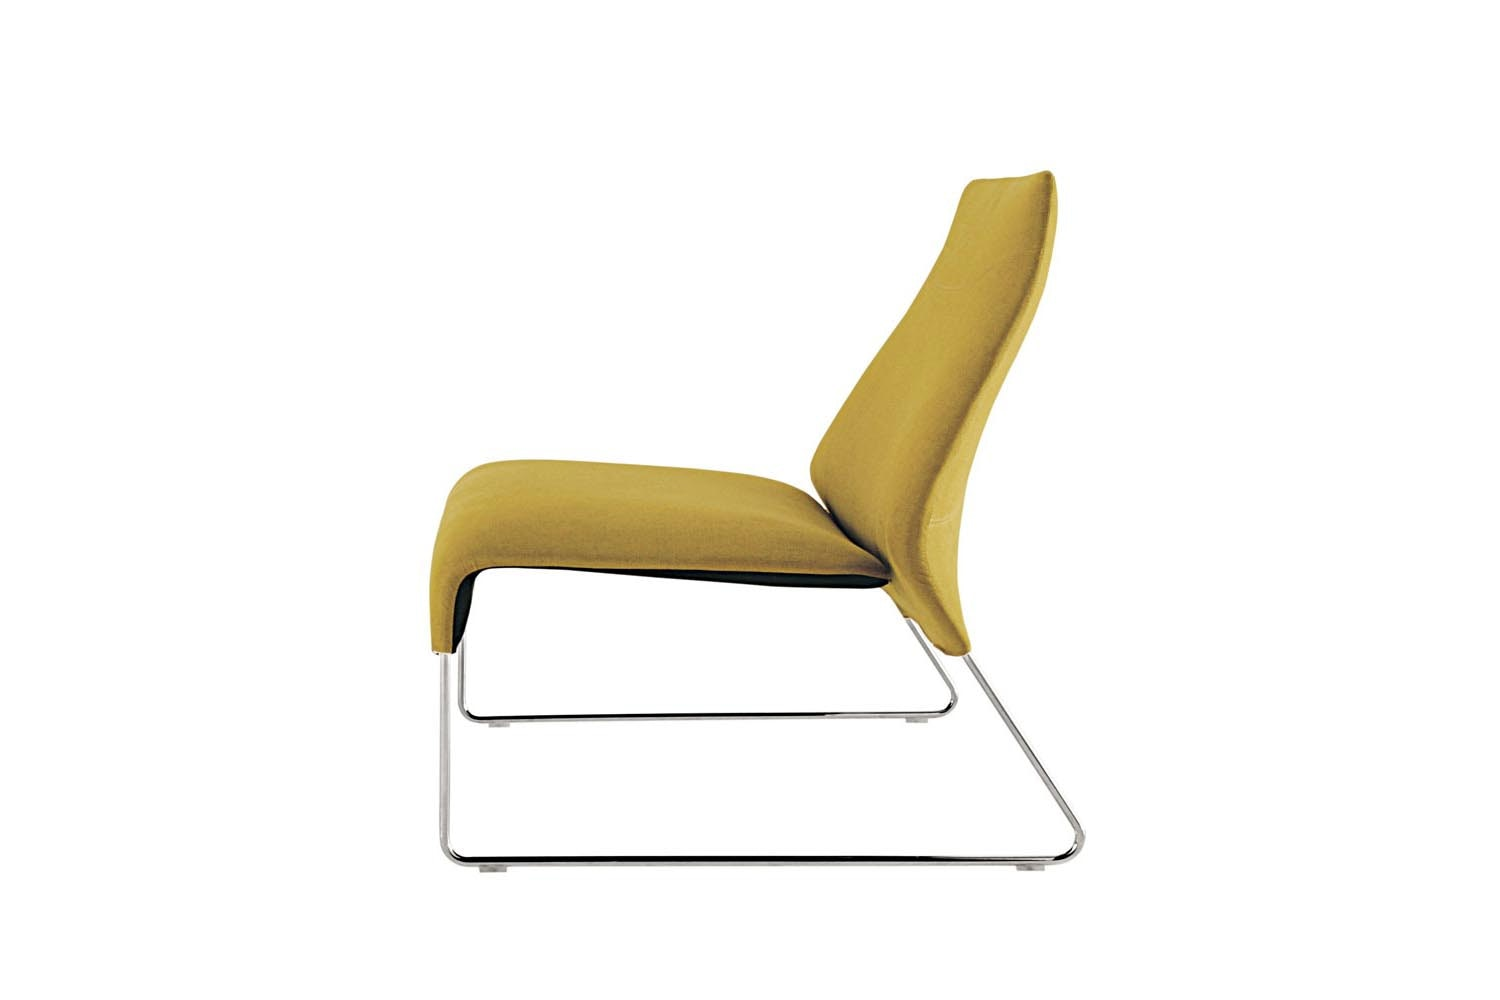 Lazy '05 Armchair by Patricia Urquiola for B&B Italia